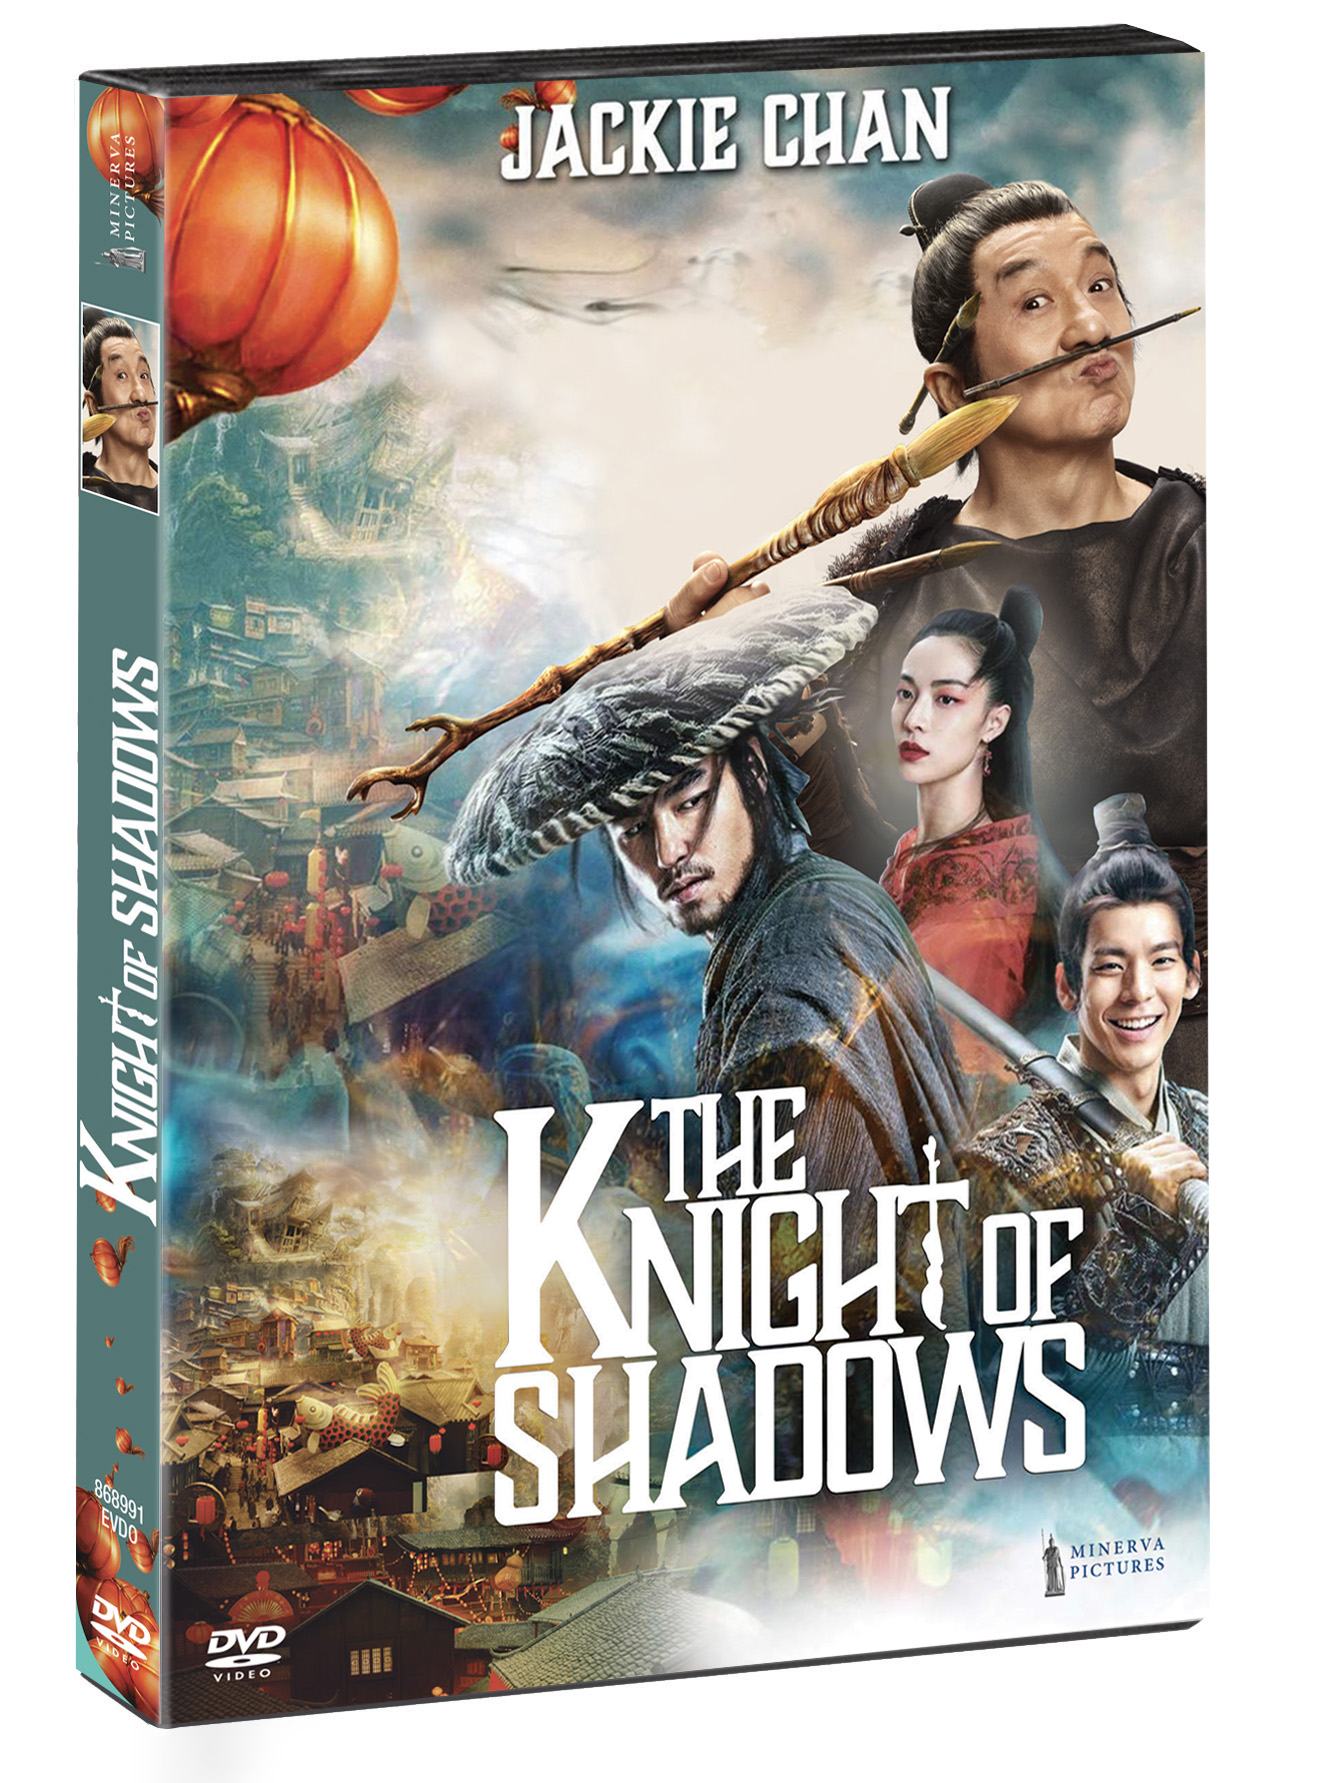 THE KNIGHT OF SHADOWS (DVD)